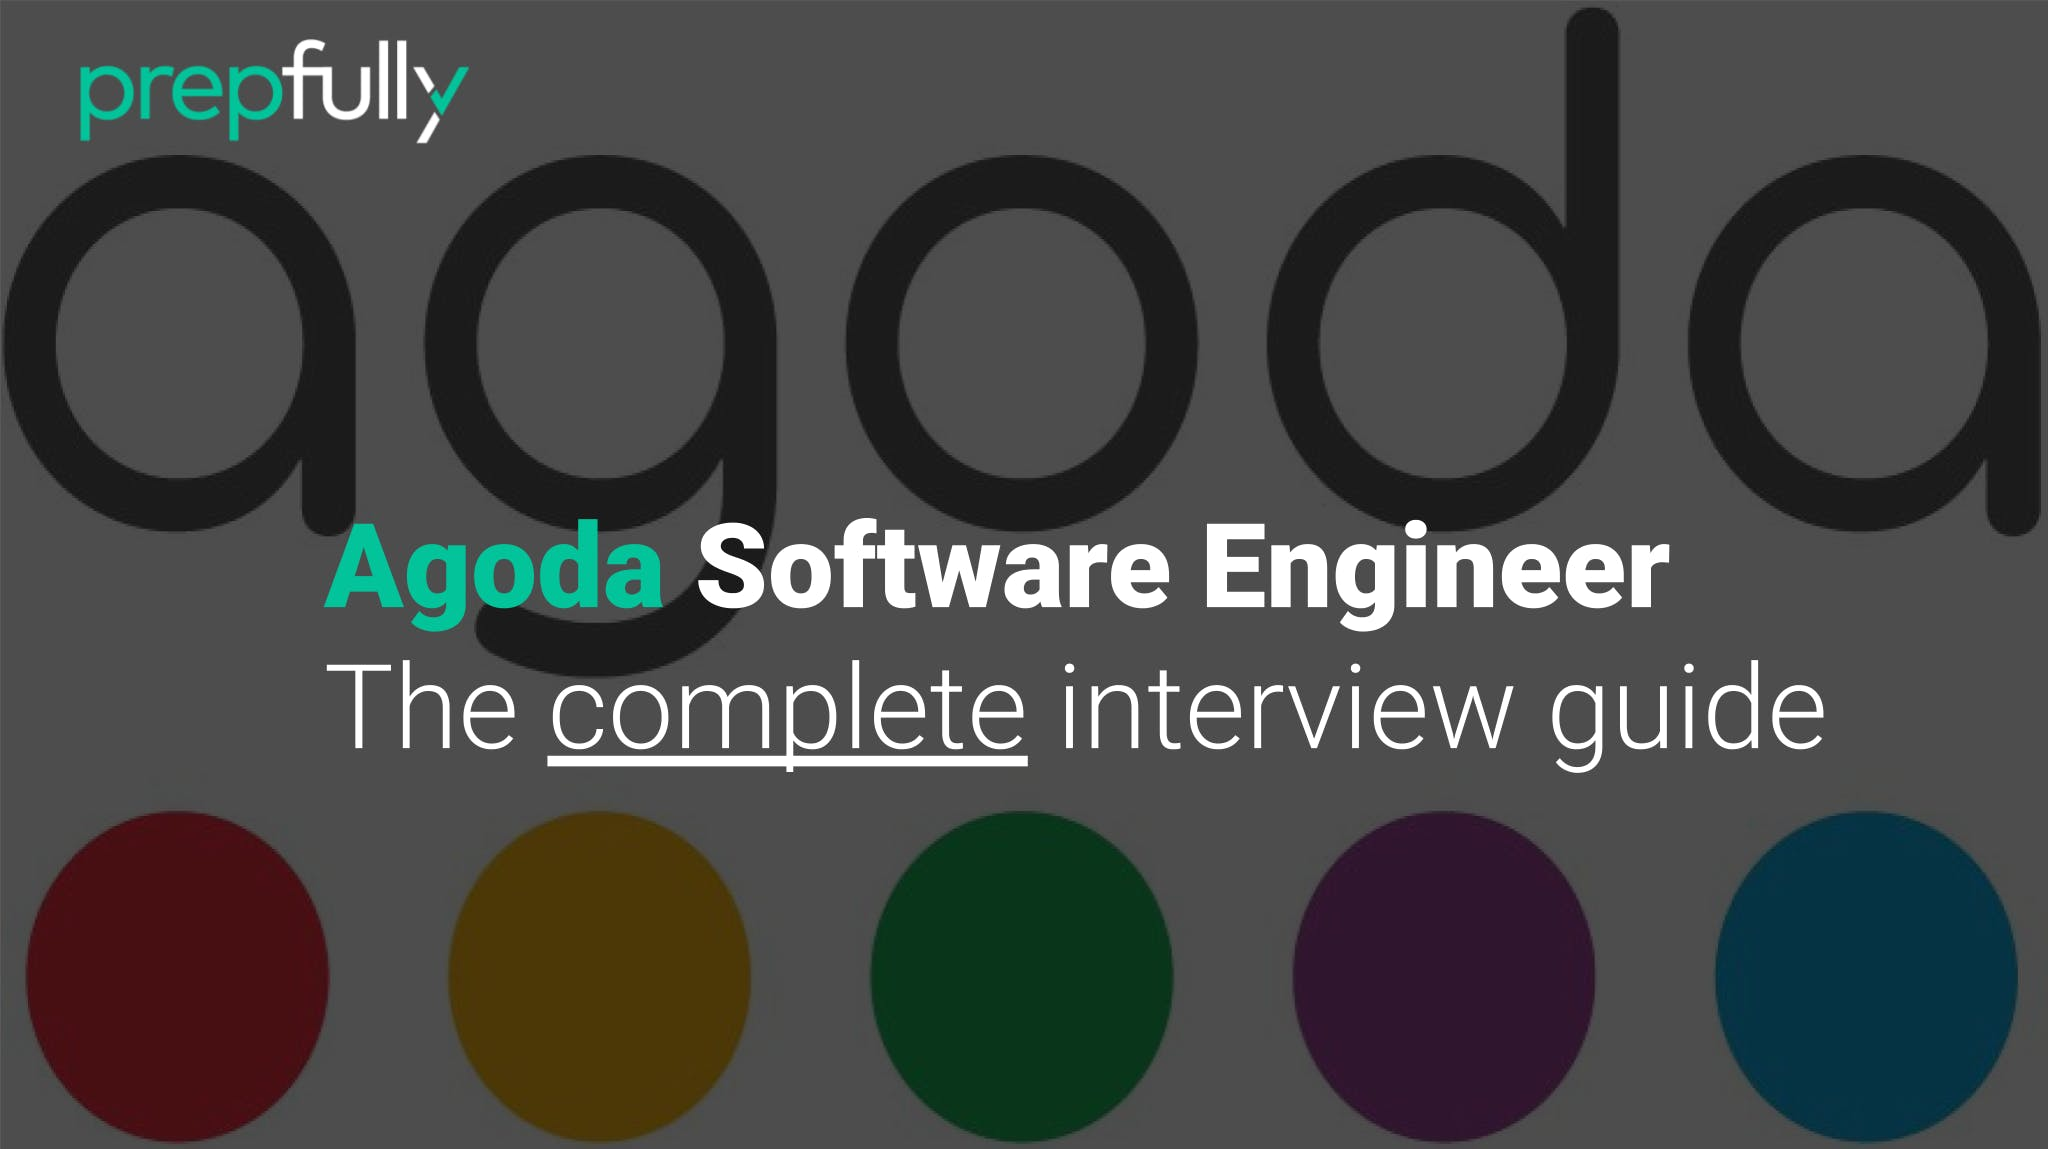 Interview guide for Agoda Software Engineer